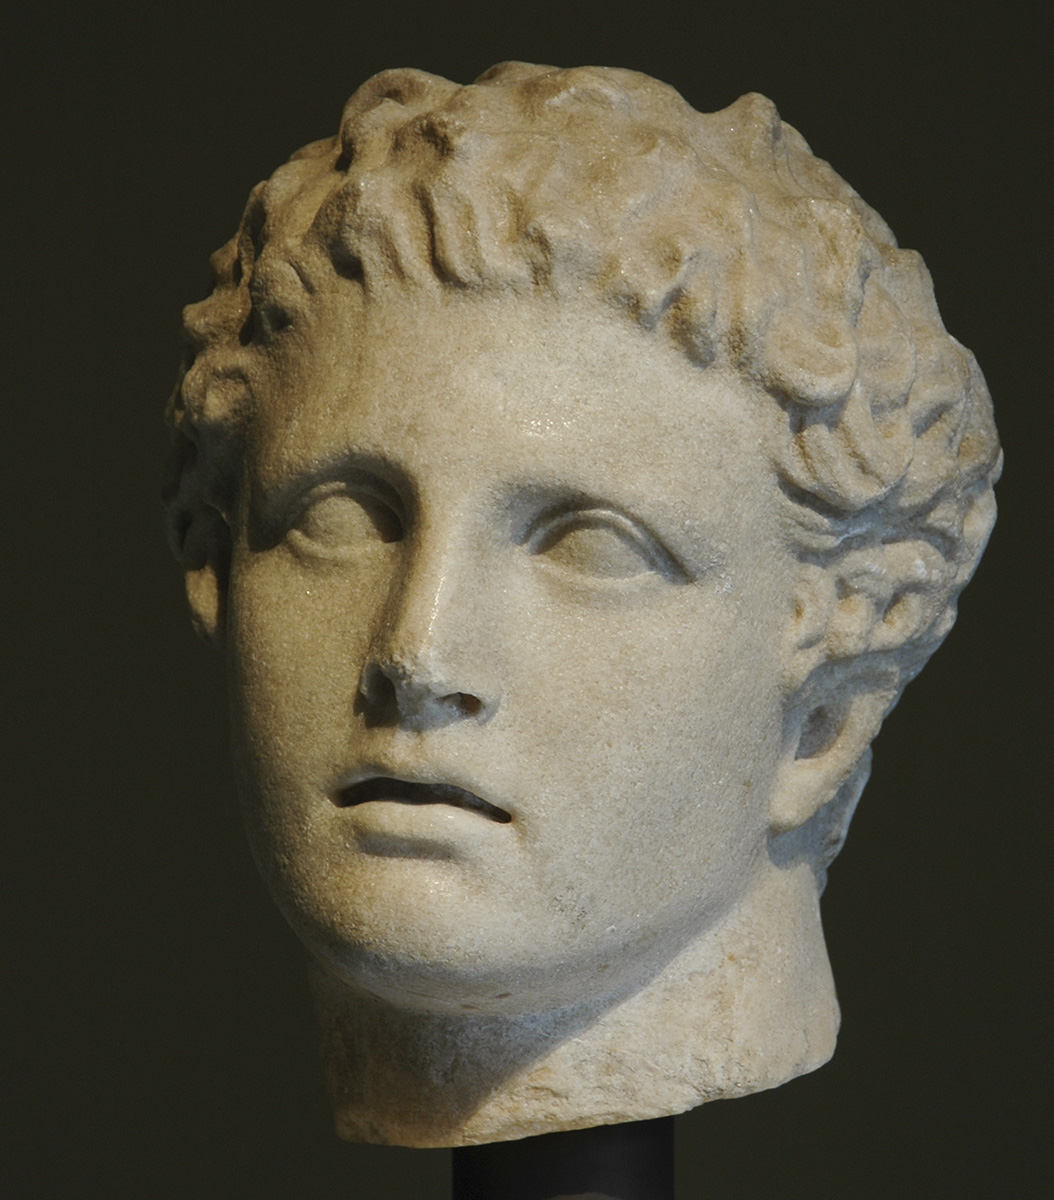 Head of Meleager. Marble. Roman copy after a Greek original ca. 340—330 BCE.  Inv. No. I 1283. Vienna, Museum of Art History, Collection of Classical Antiquities